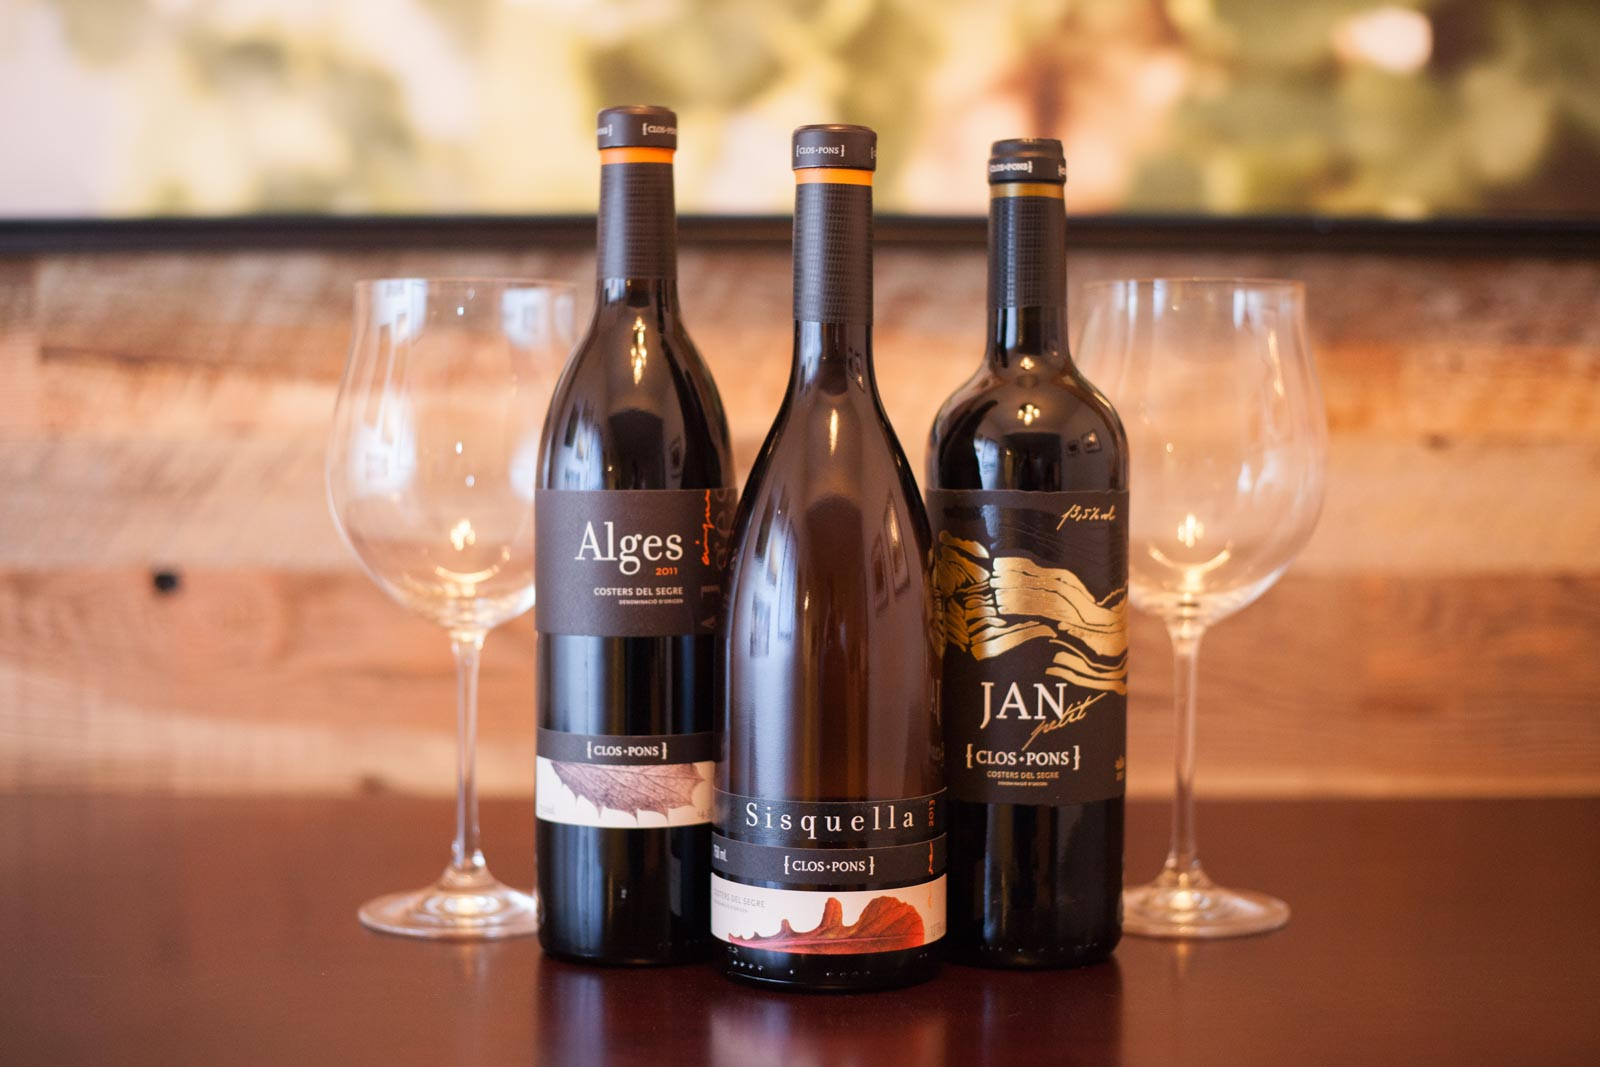 Three wines from Clos Pons, a Spanish winemaker in Costers del Segre. ©Kevin Day / Opening a Bottle